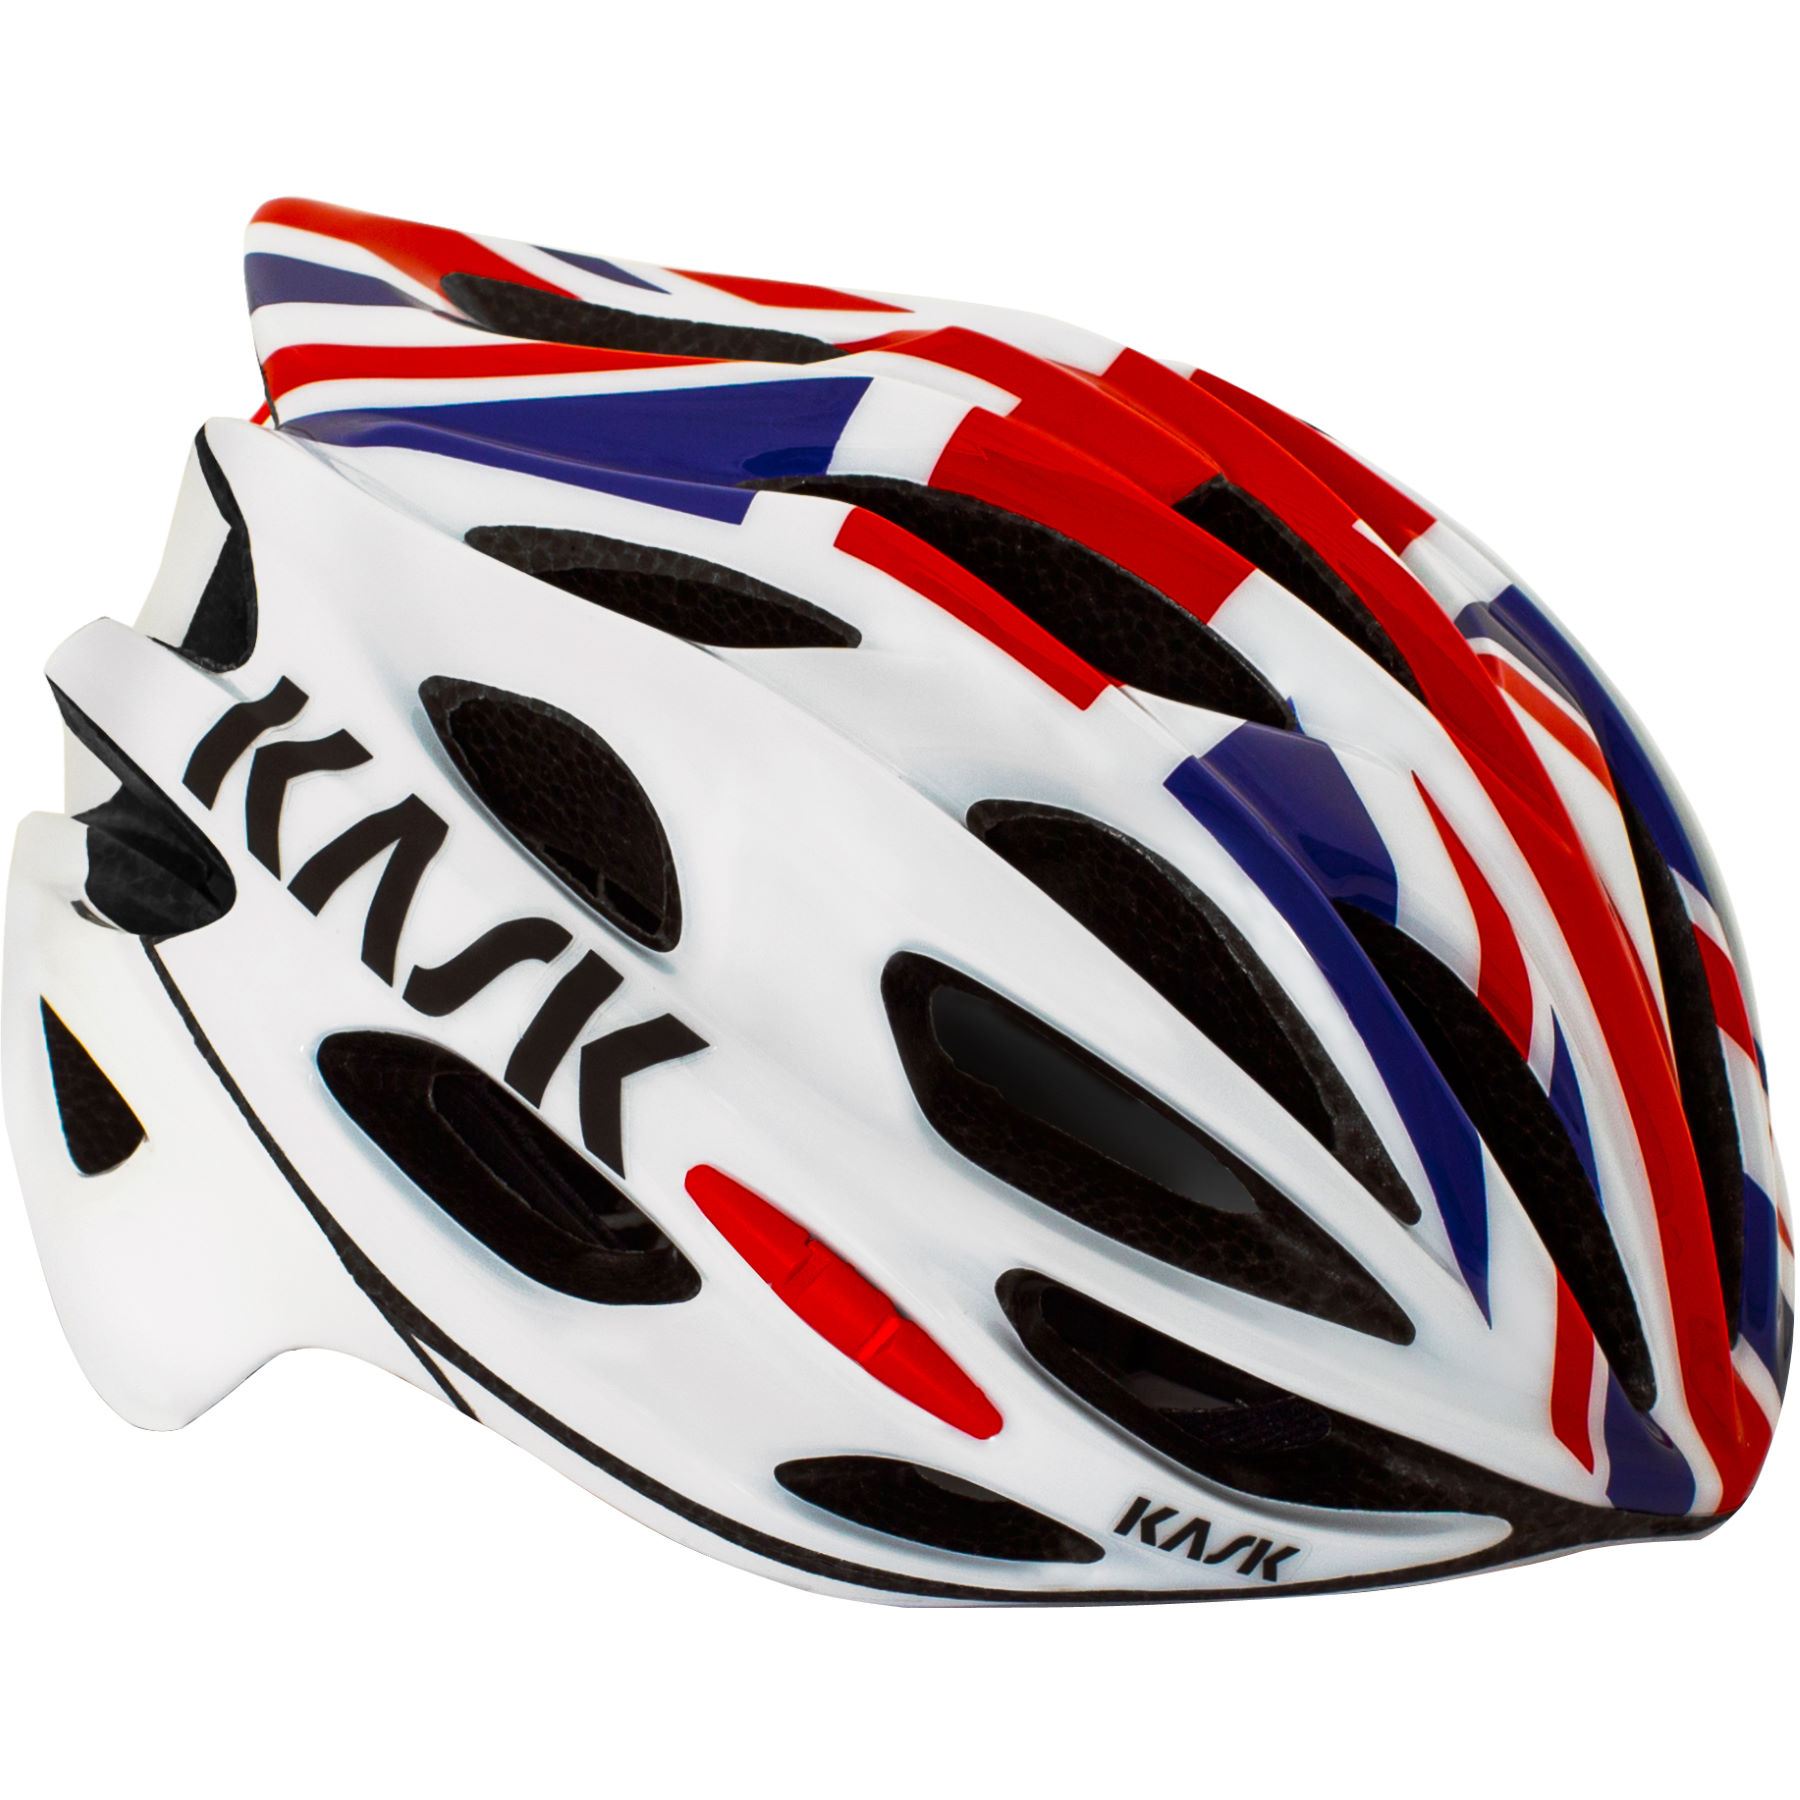 Wiggle | Kask Mojito Road Helmet - Team GB Edition | Road ...